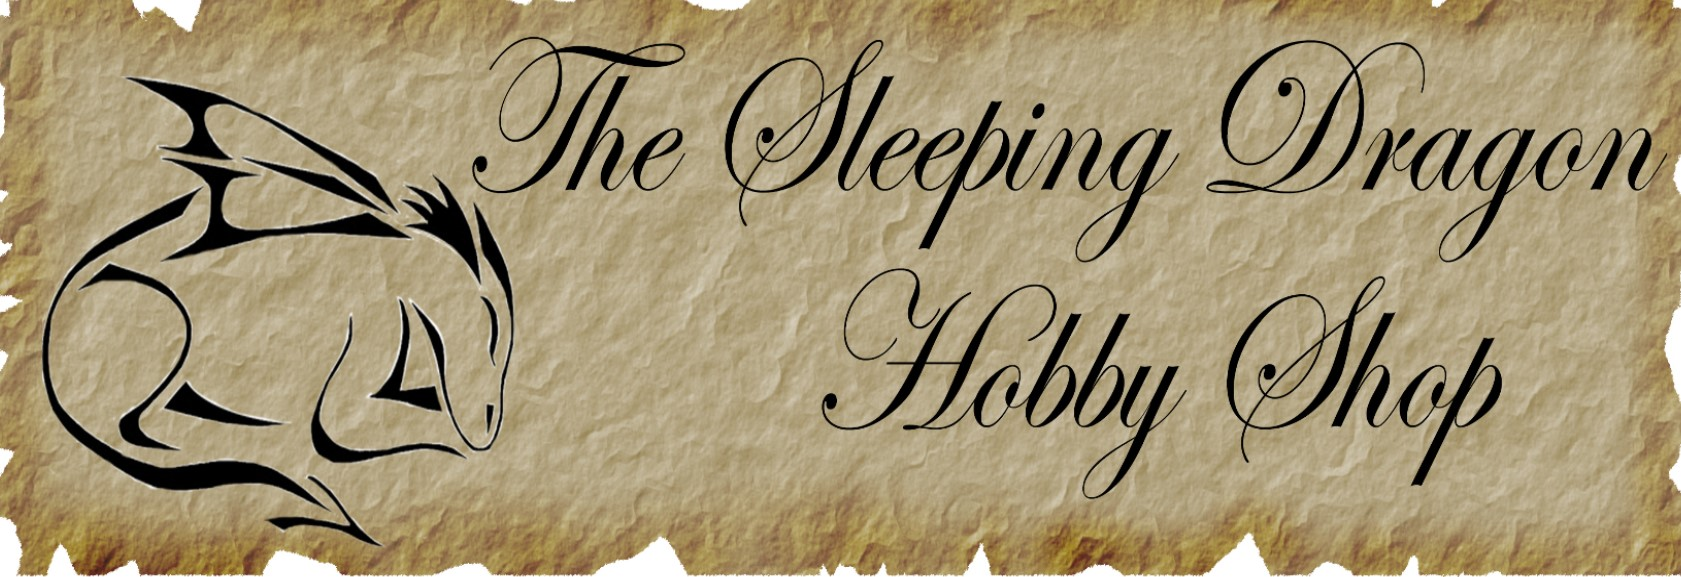 The Sleeping Dragon Hobby Shop